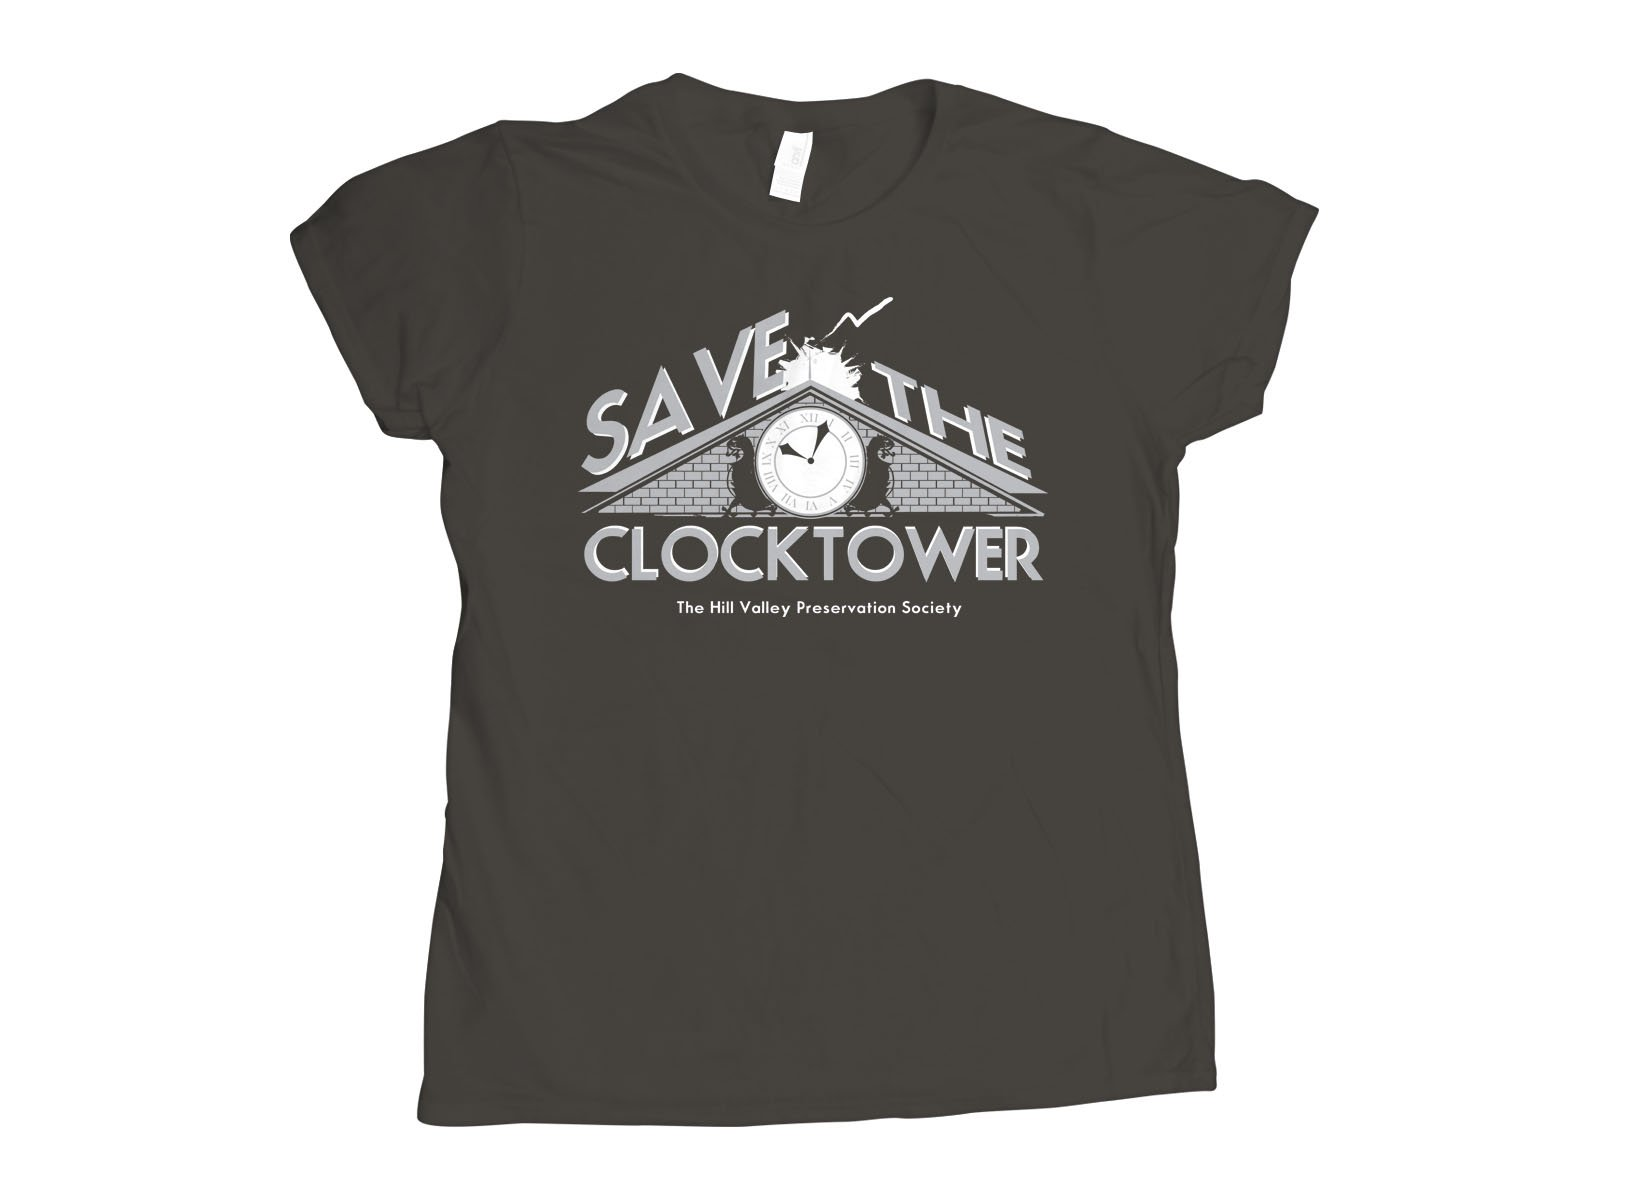 Save The Clocktower on Womens T-Shirt